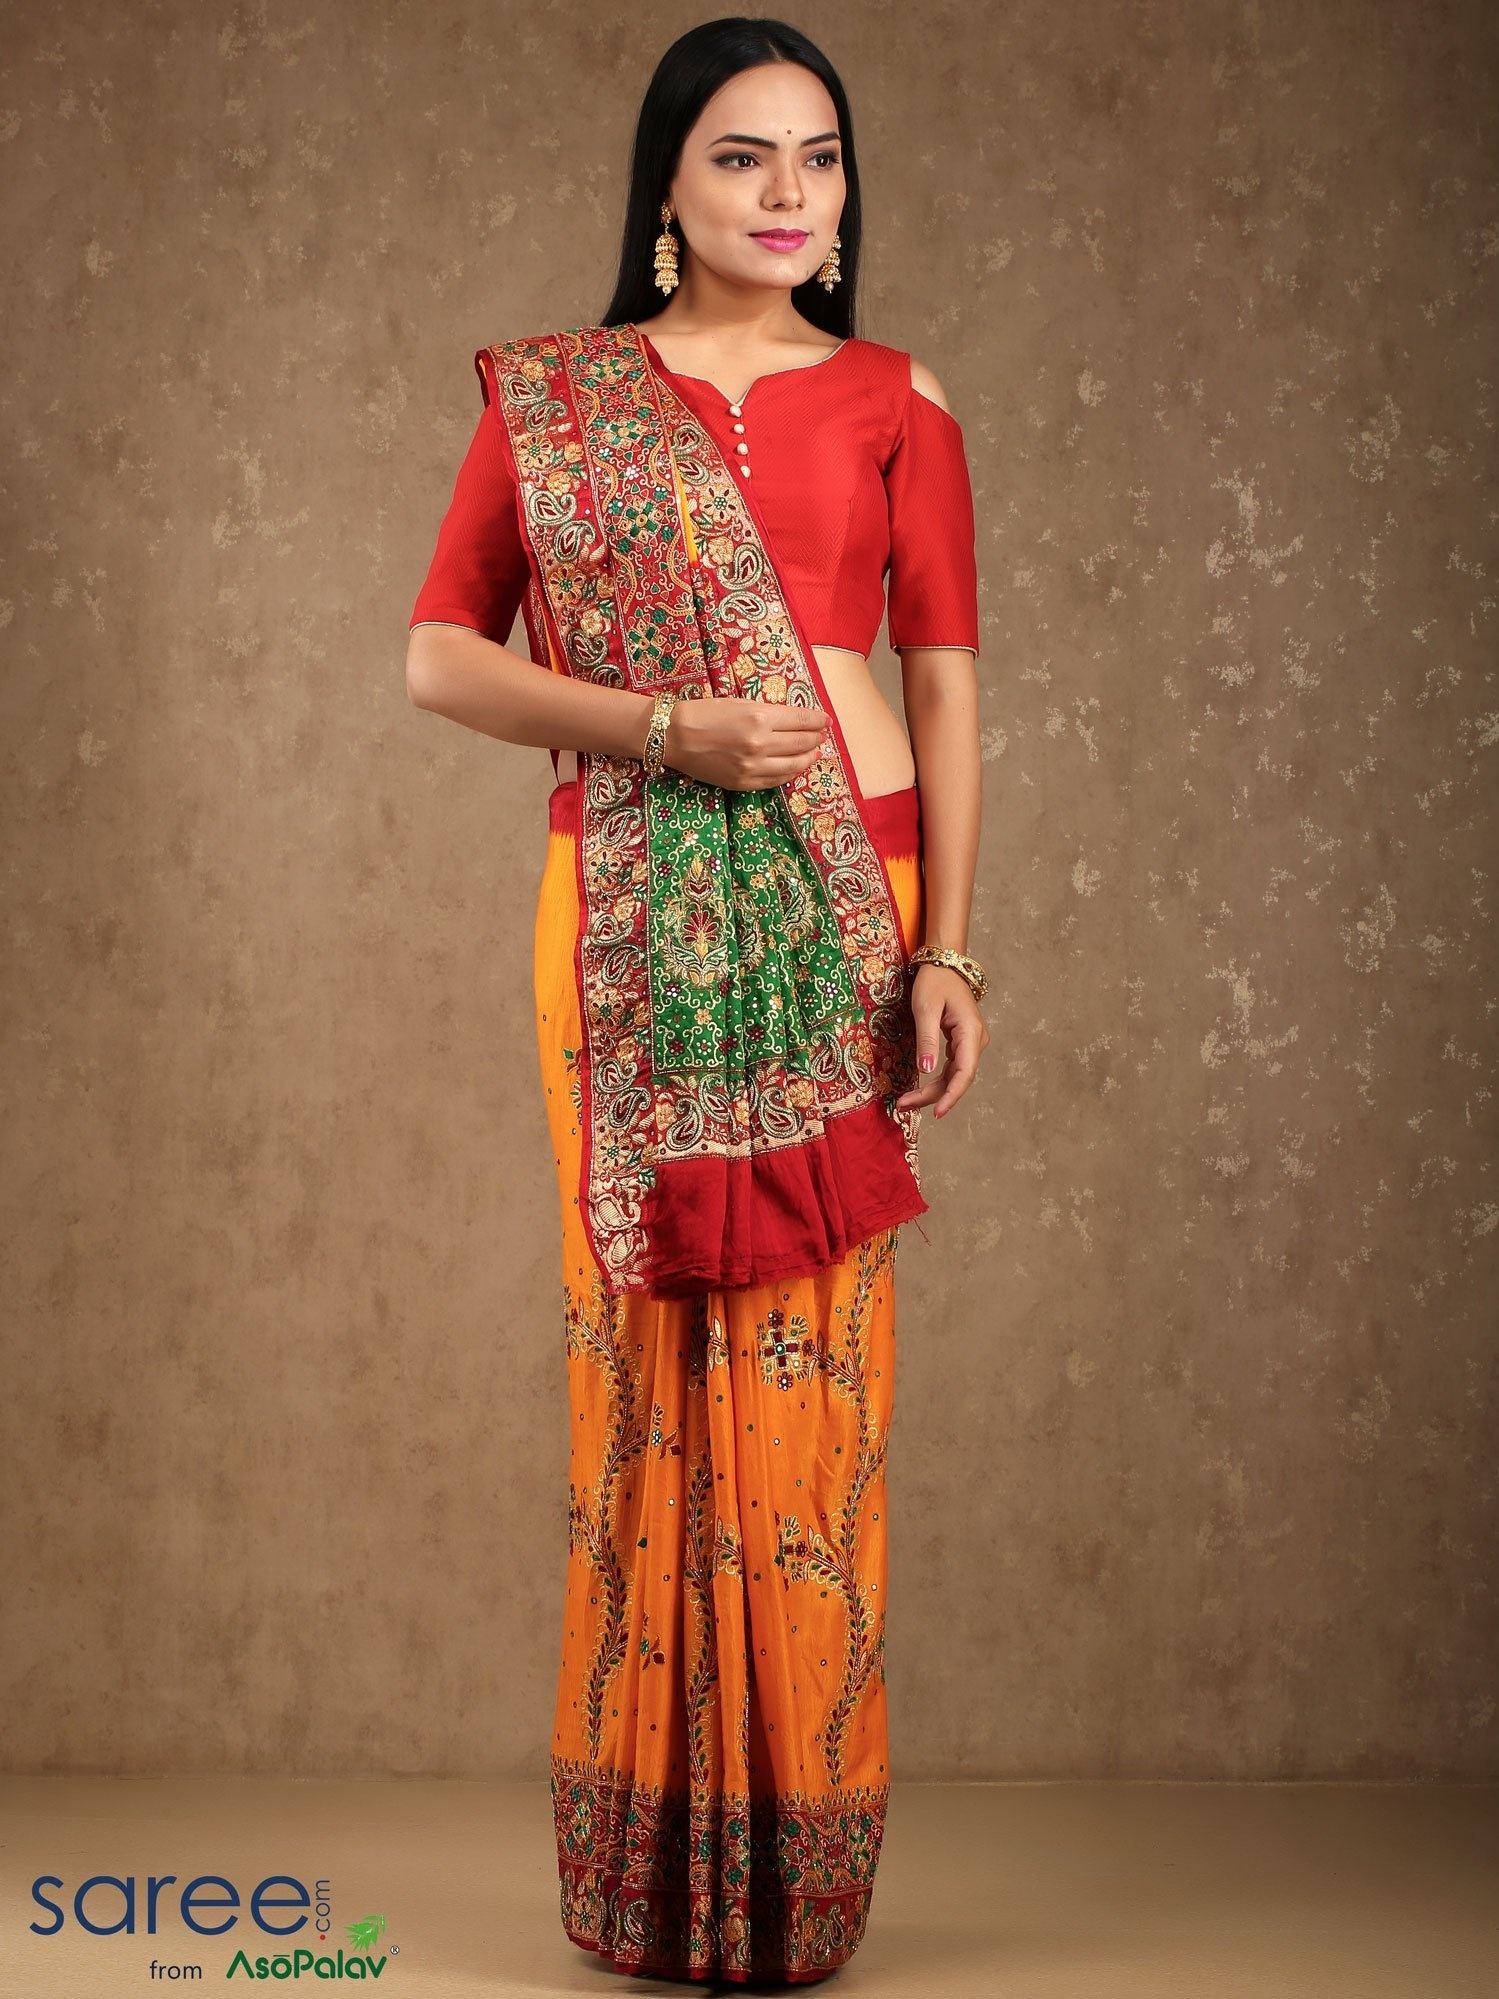 bc6524a2c9 These days, even though India is under high influence of the western  culture, a red saree can still be seen in the wardrobe of almost every  Indian bride!